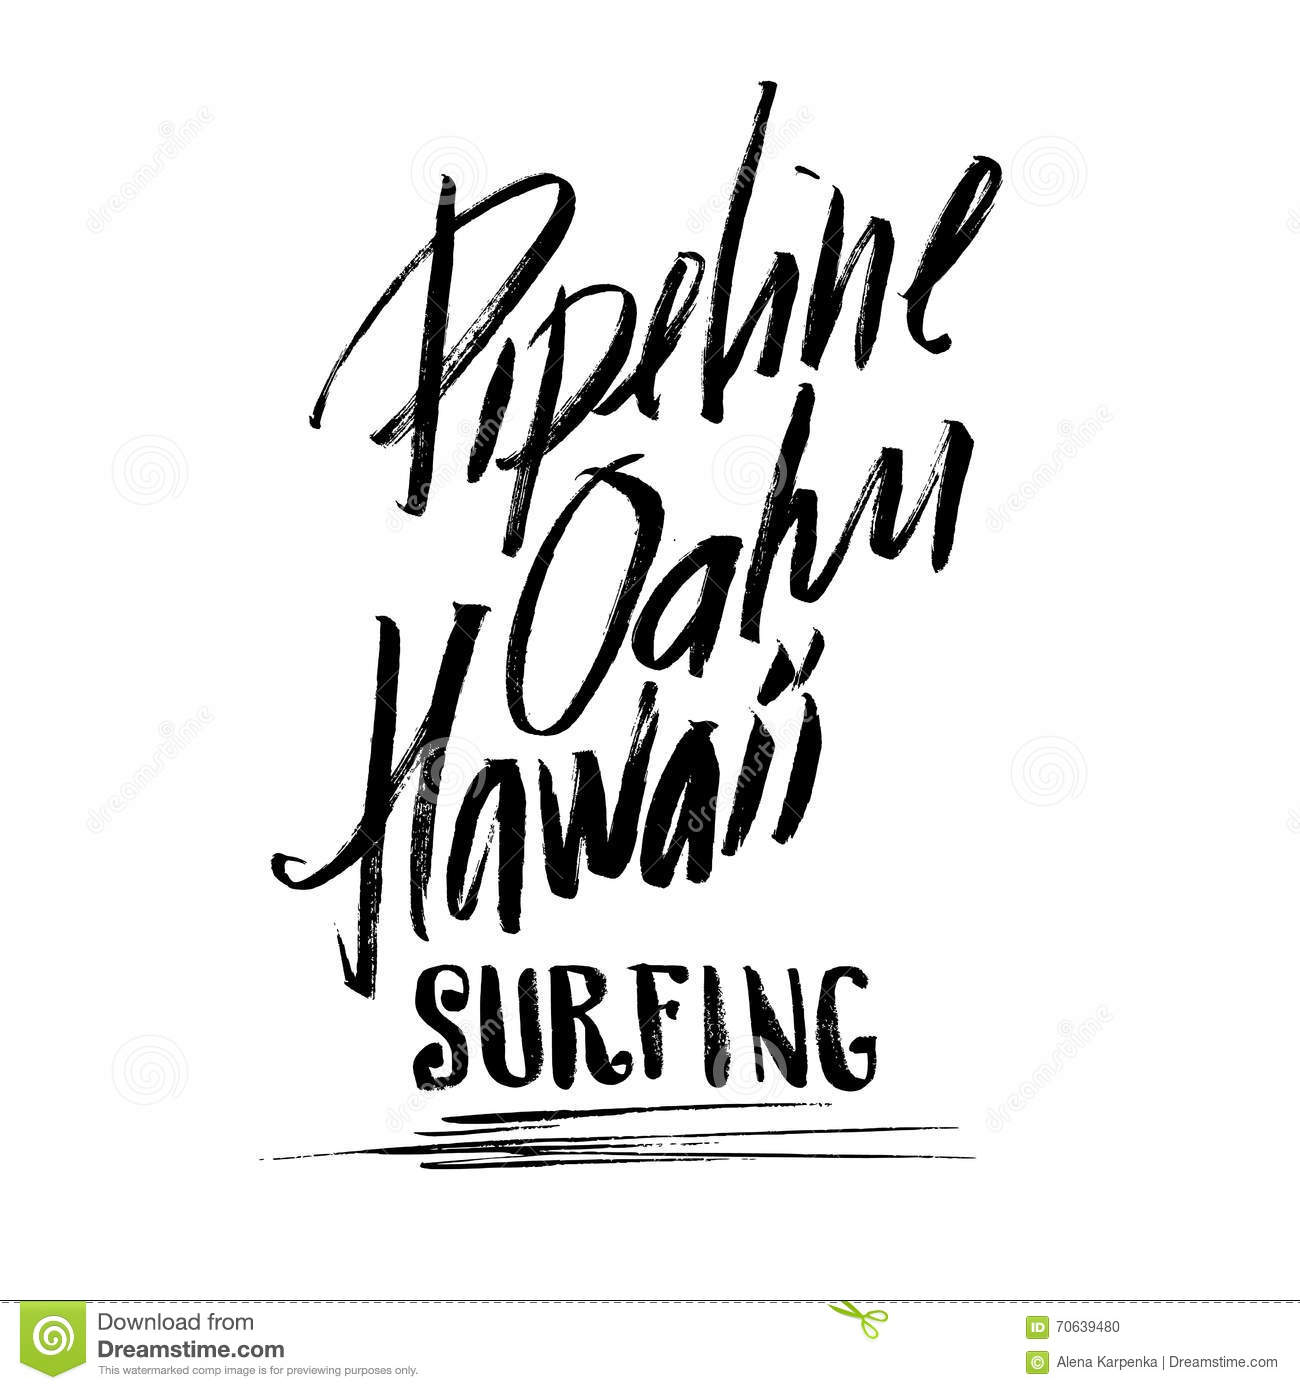 Pipeline Oahu Hawaii Surfing Lettering Brush Ink Sketch